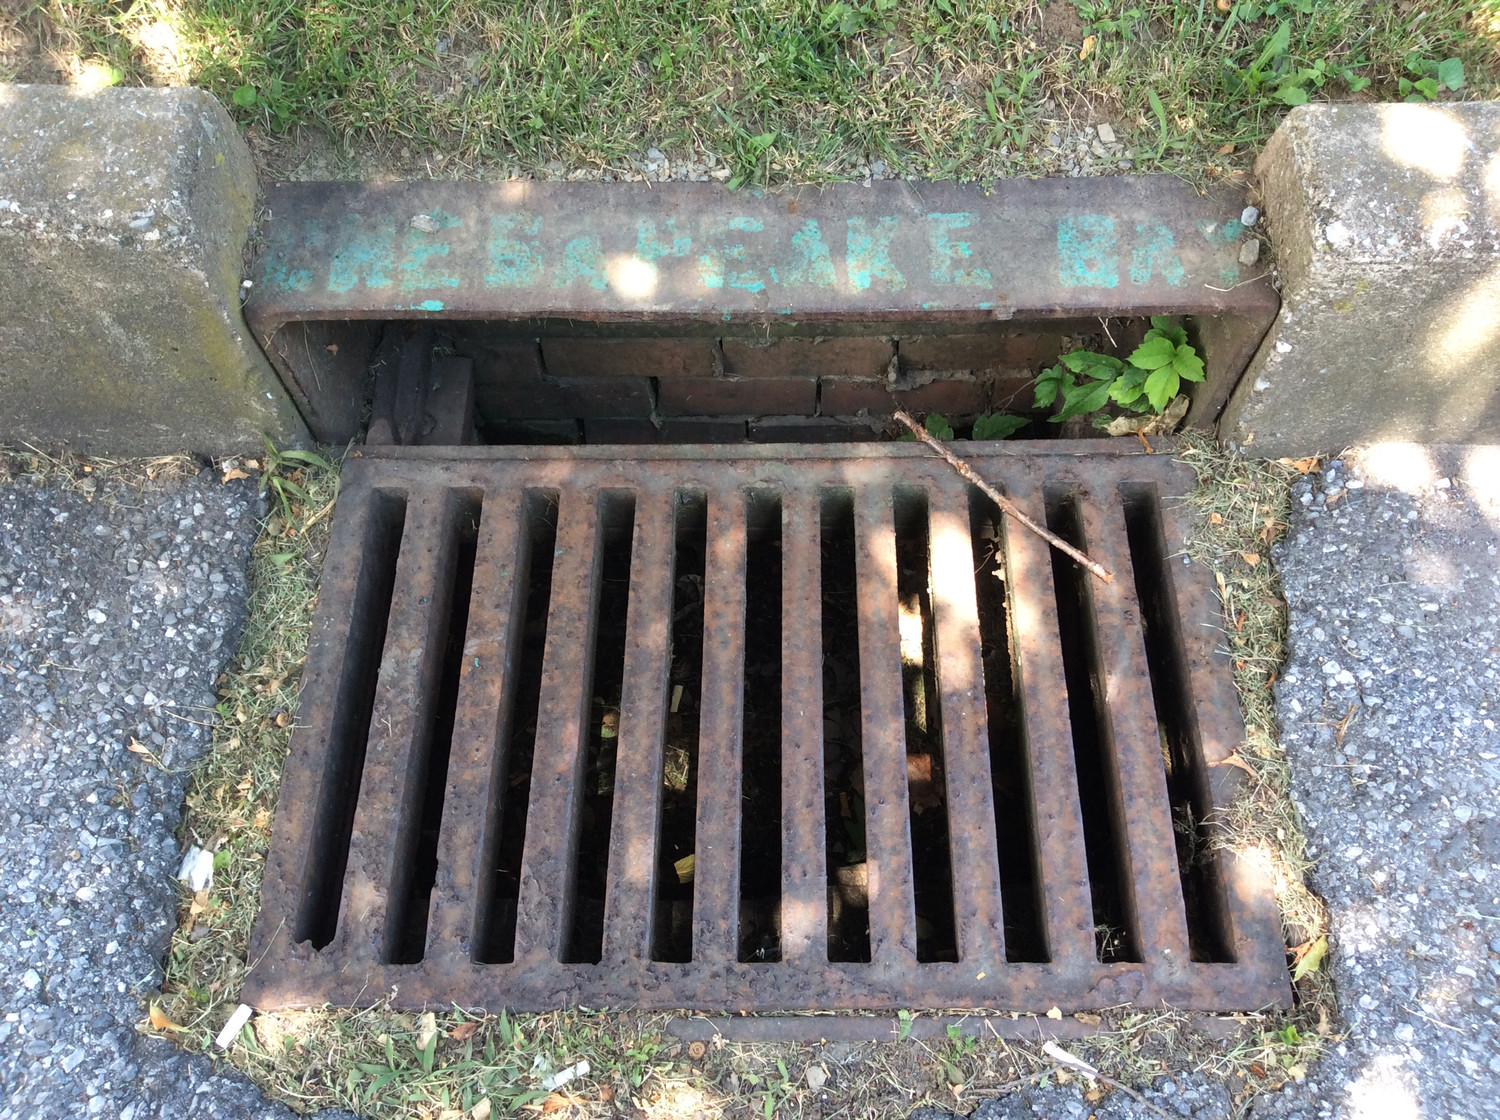 Middletown should consider levying a fee on property owners to help pay for improvements to the stormwater system being mandated by the Chesapeake Bay cleanup. This June 30 photo shows a stormwater drain on Mill Street.